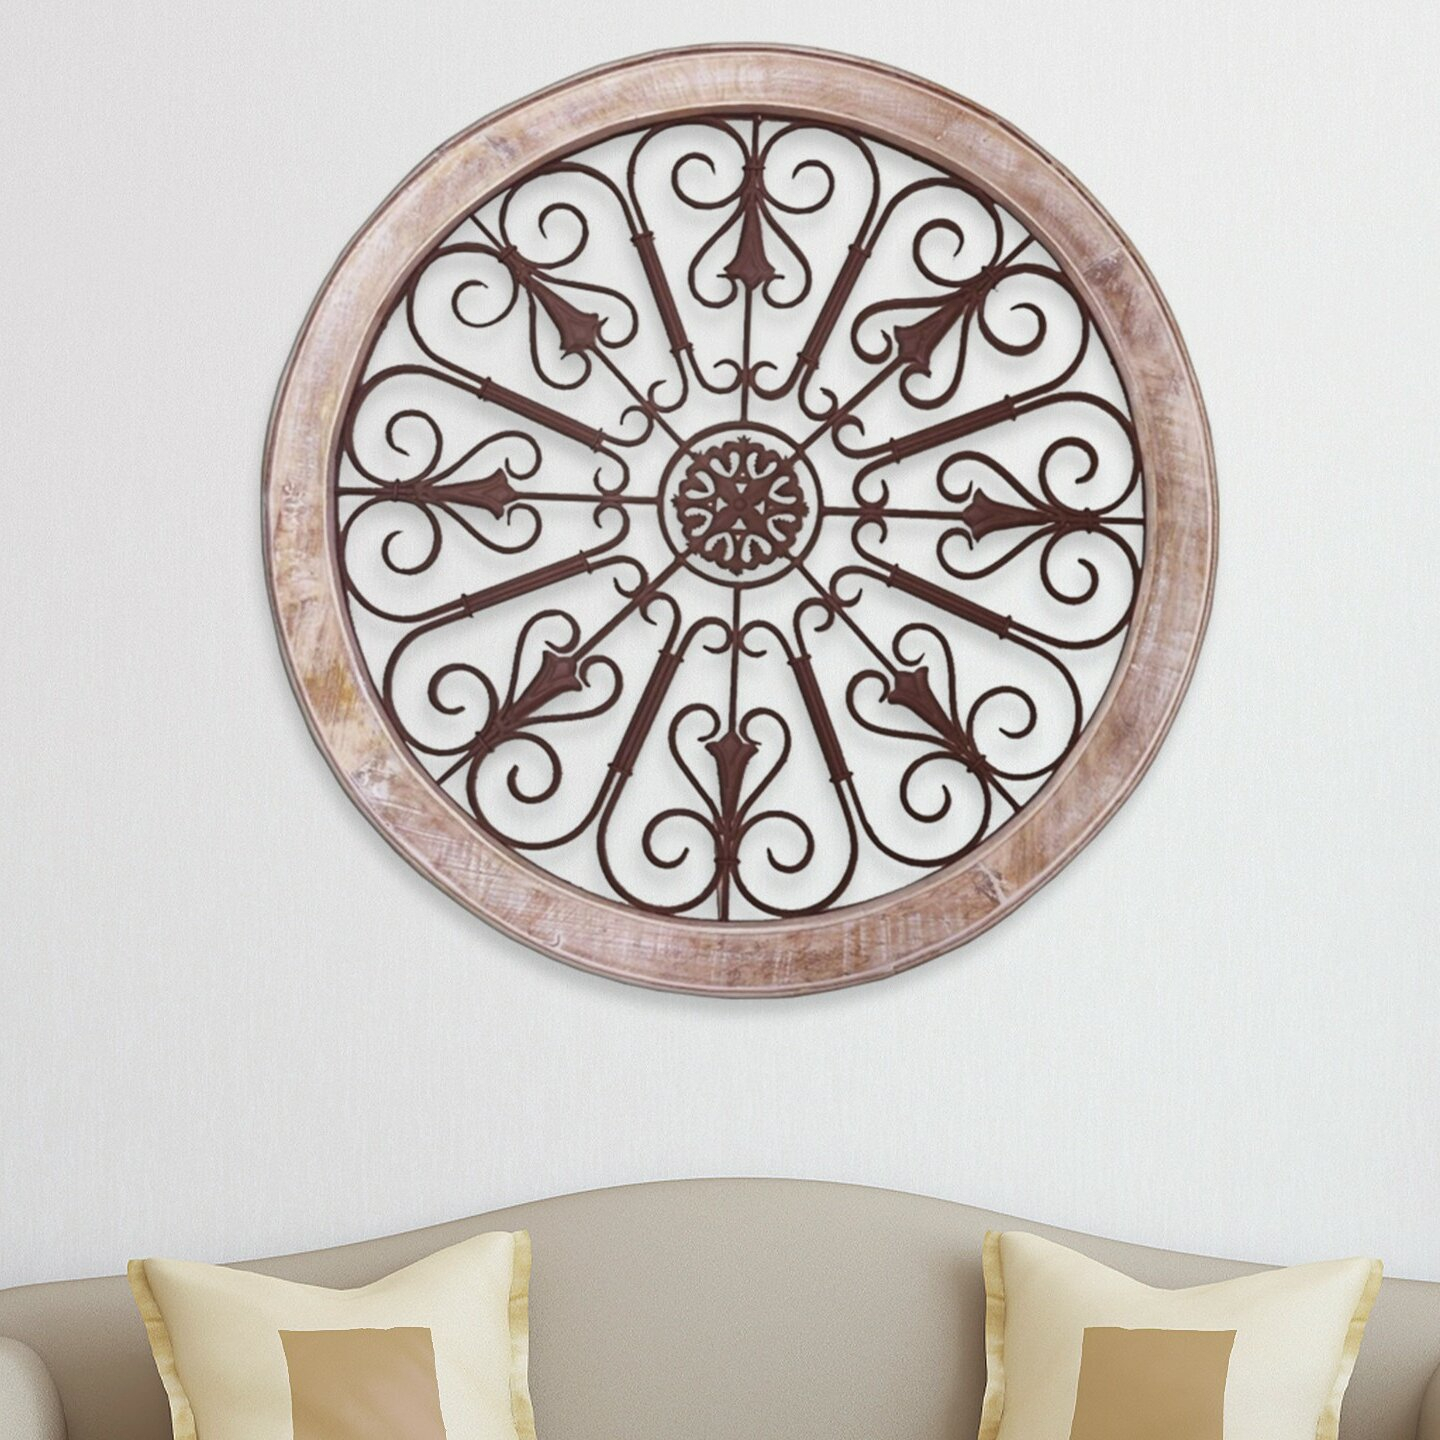 Round Wall Decor | Wayfair Pertaining To Round Compass Wall Decor (View 21 of 30)